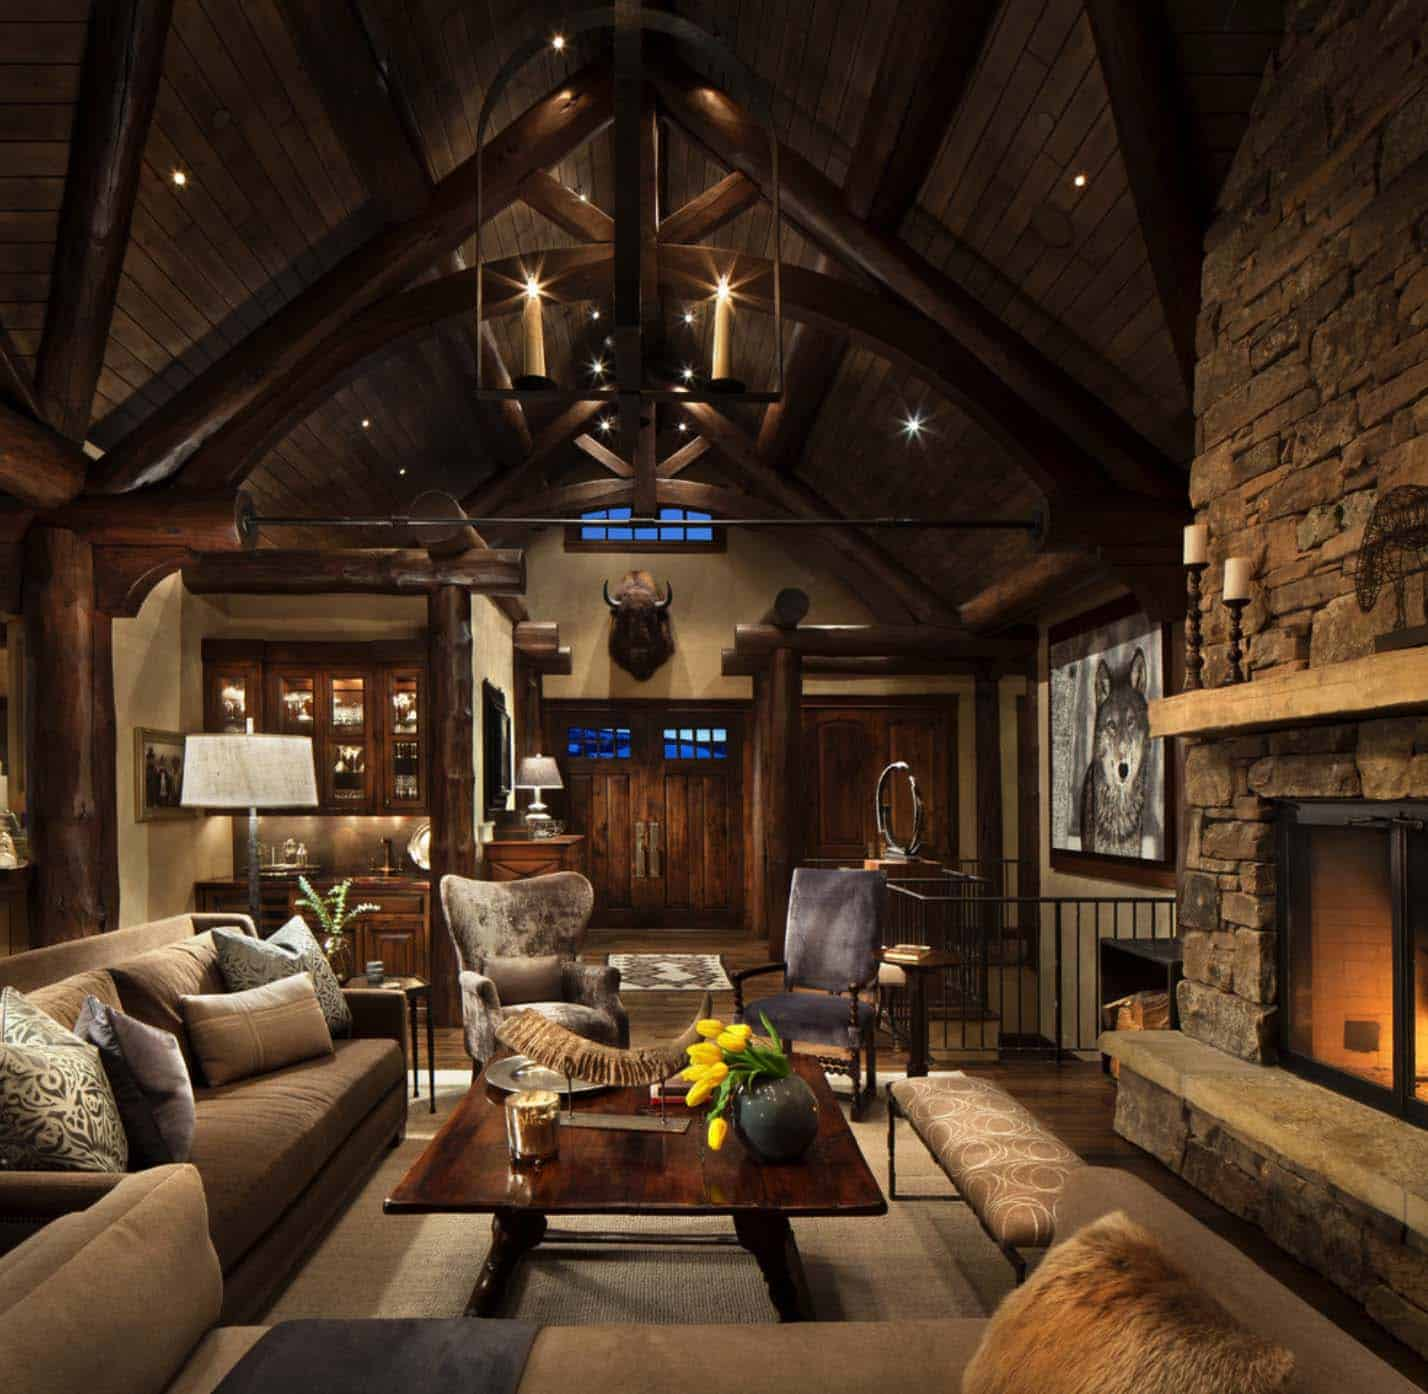 House Inside Design: Exquisite Mountain Home Remodel Mixes Rustic With Modern